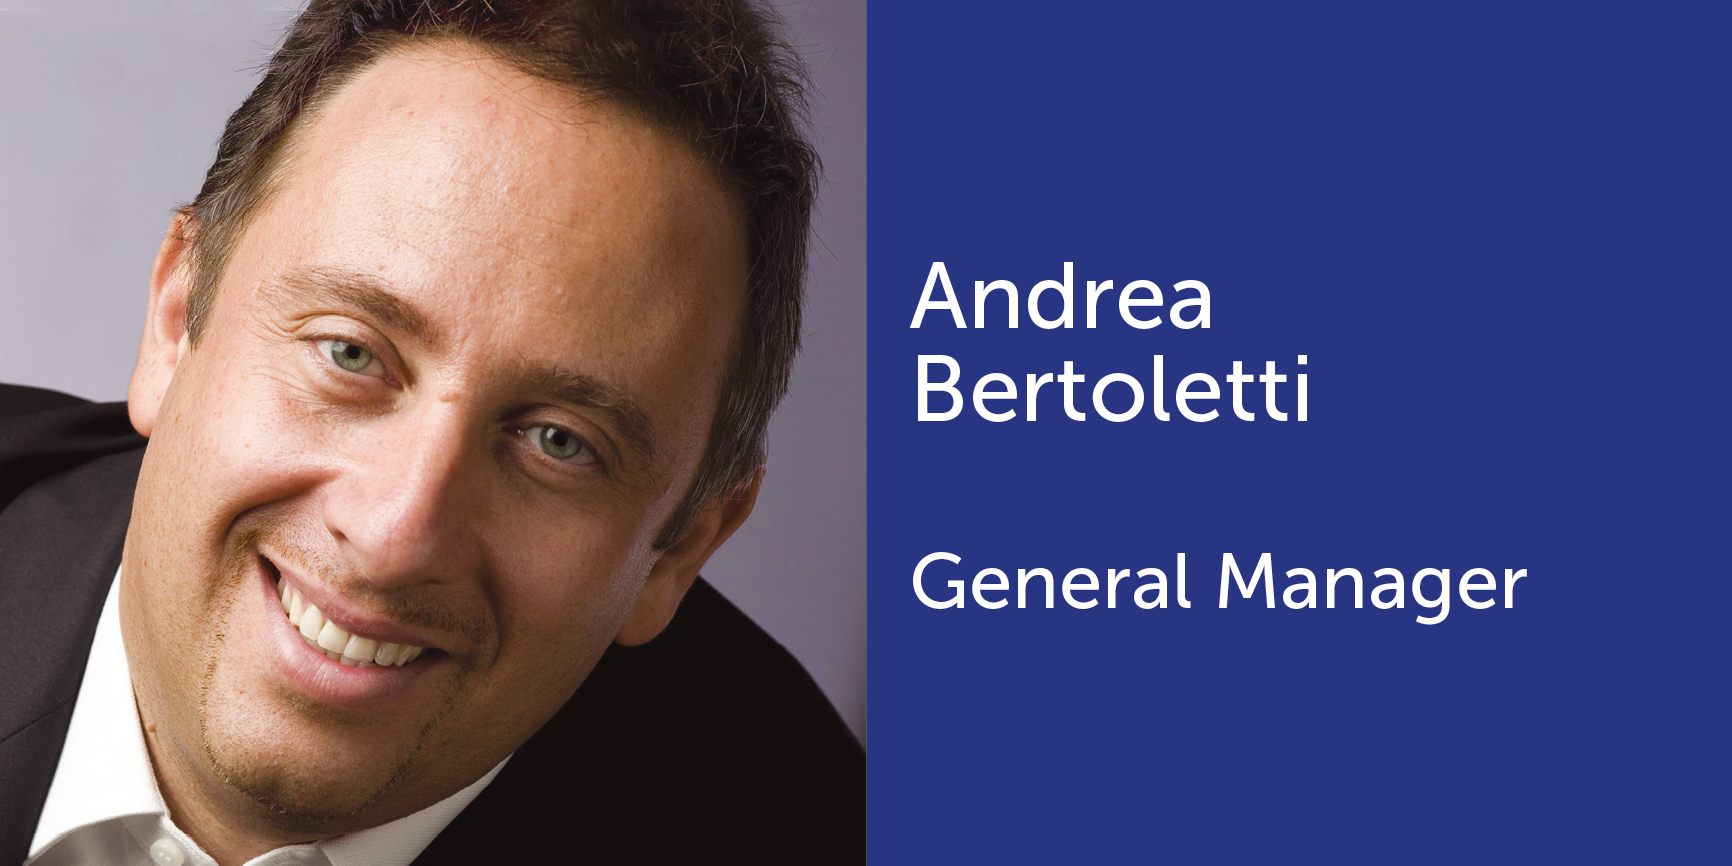 Andrea Bertoletti - General Manager